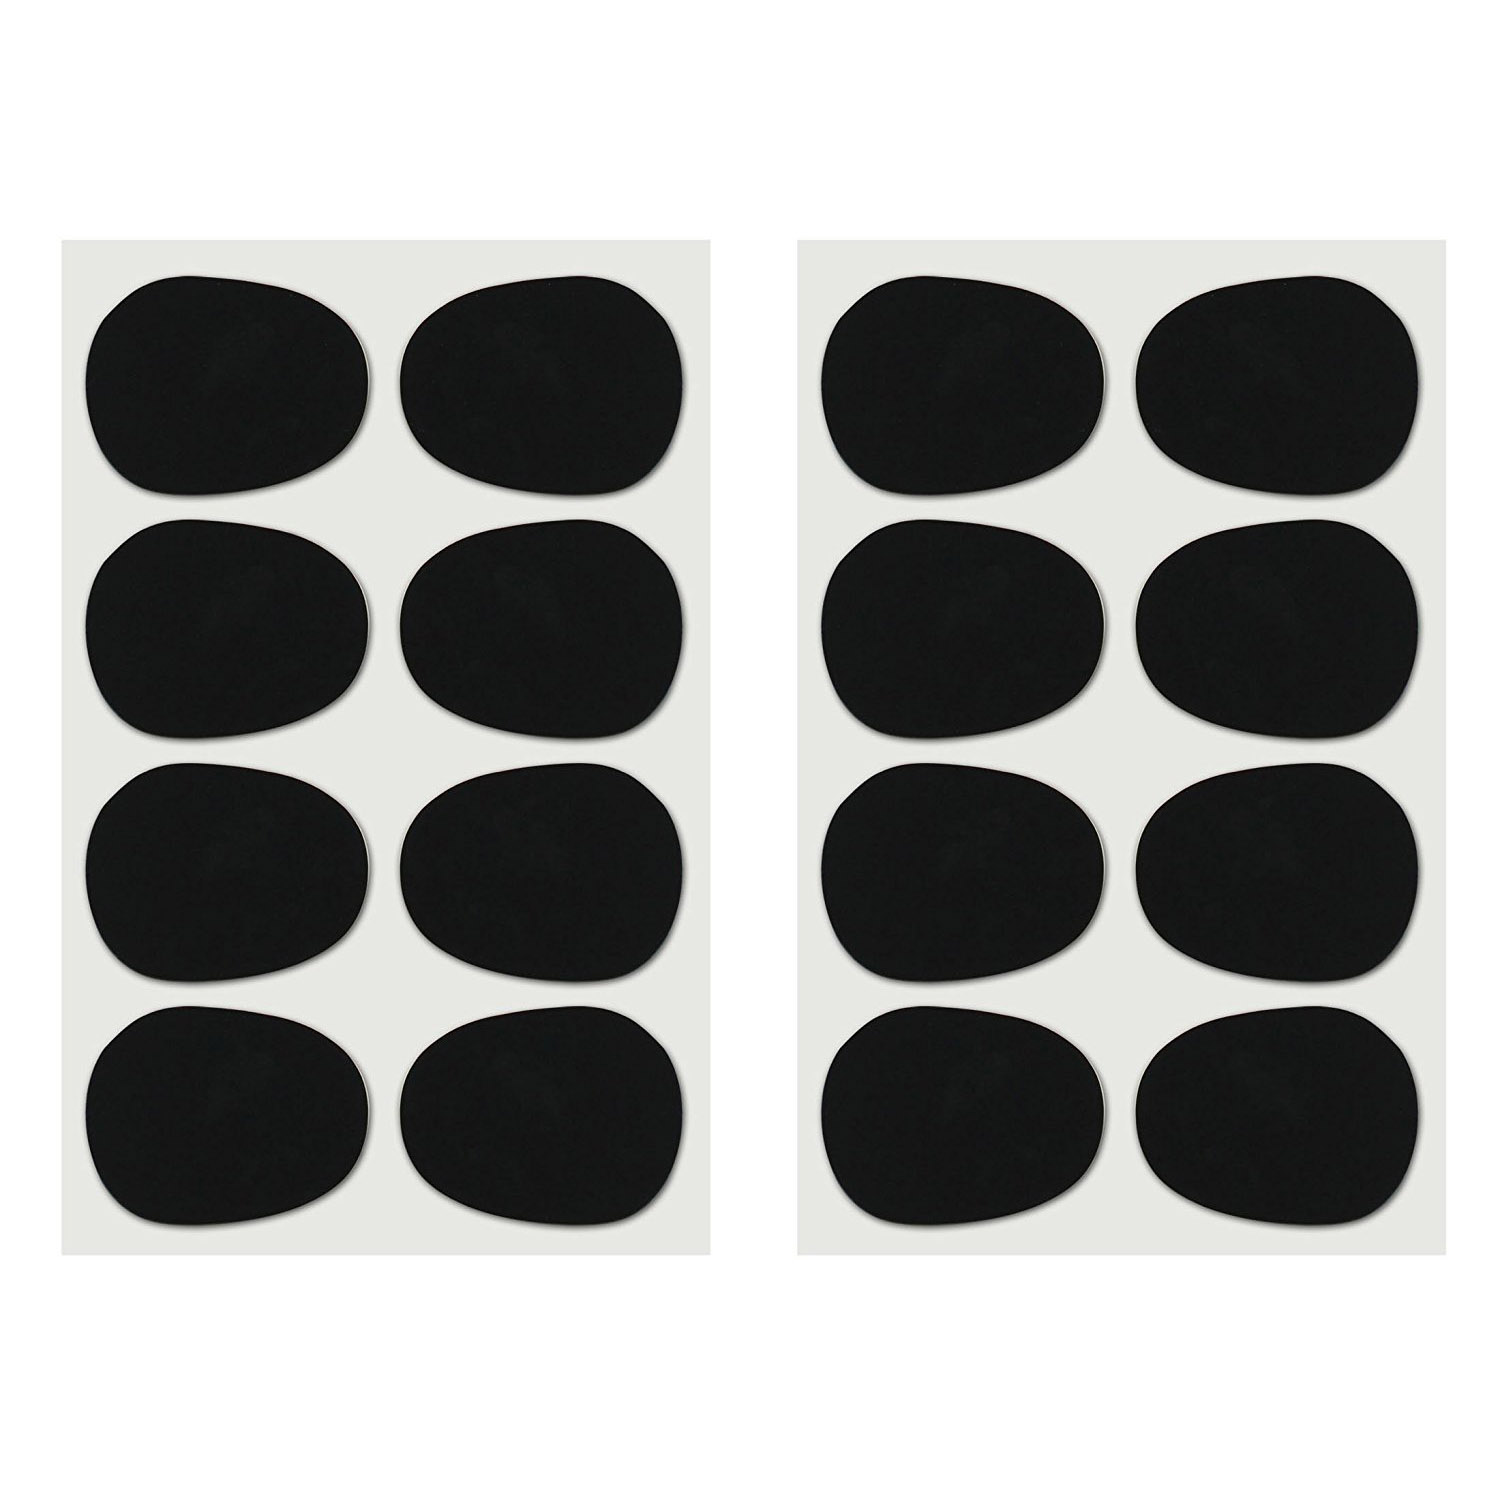 16pcs Alto/tenor Sax Clarinet Mouthpiece Patches Pads Cushions, 0.8mm Black, 16 Pack